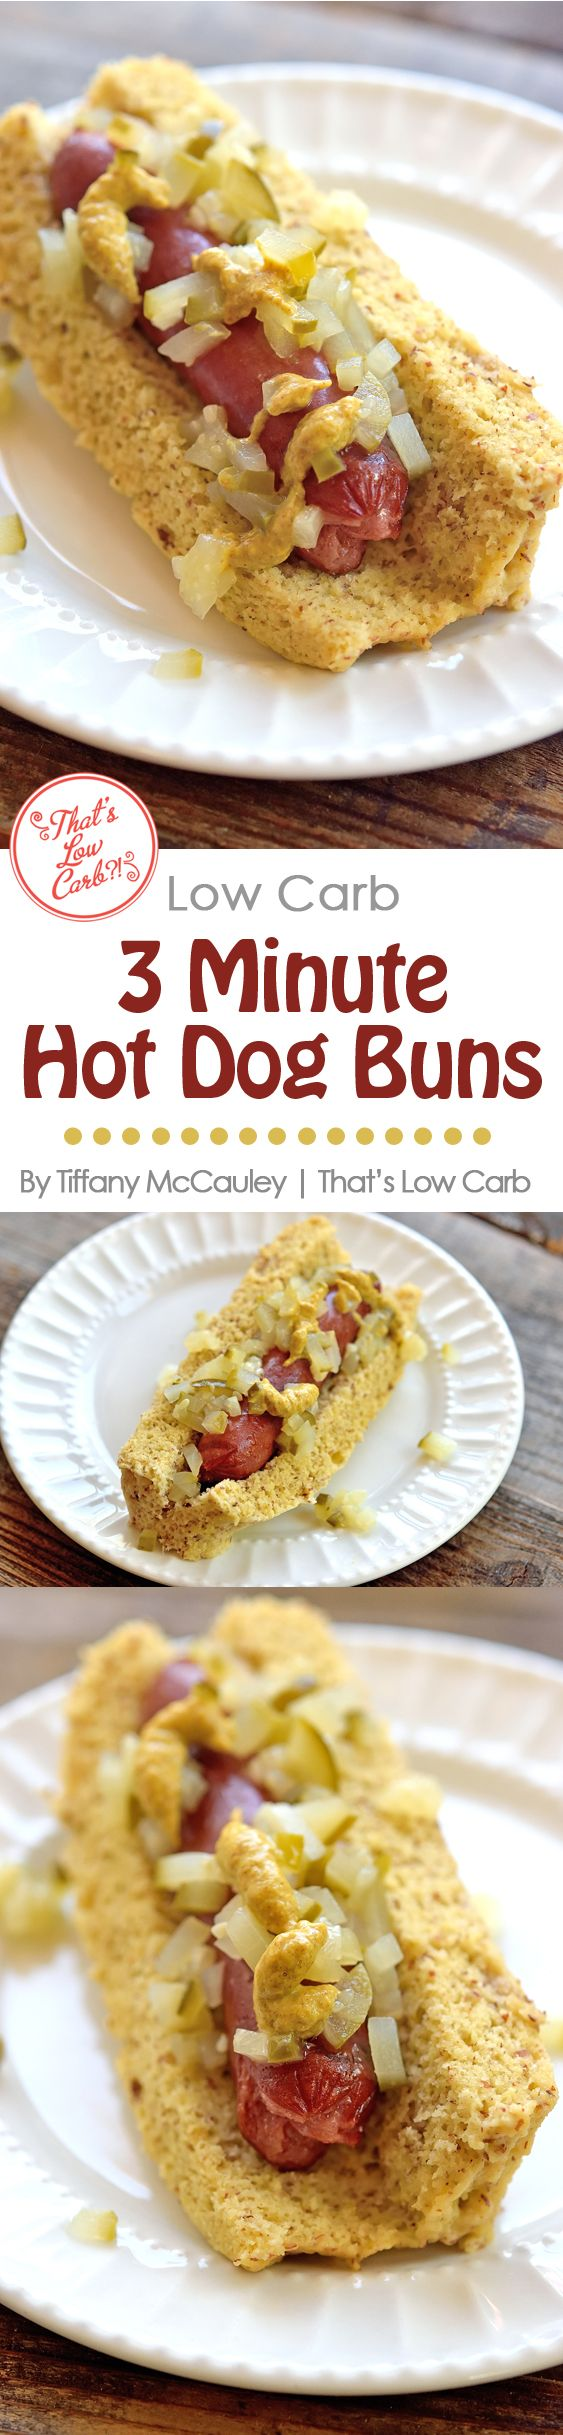 These fast and easy hot dog buns take only 4 minutes to make! They are dairy free and only 3 net carbs per bun! ~ http://www.thatslowcarb.com